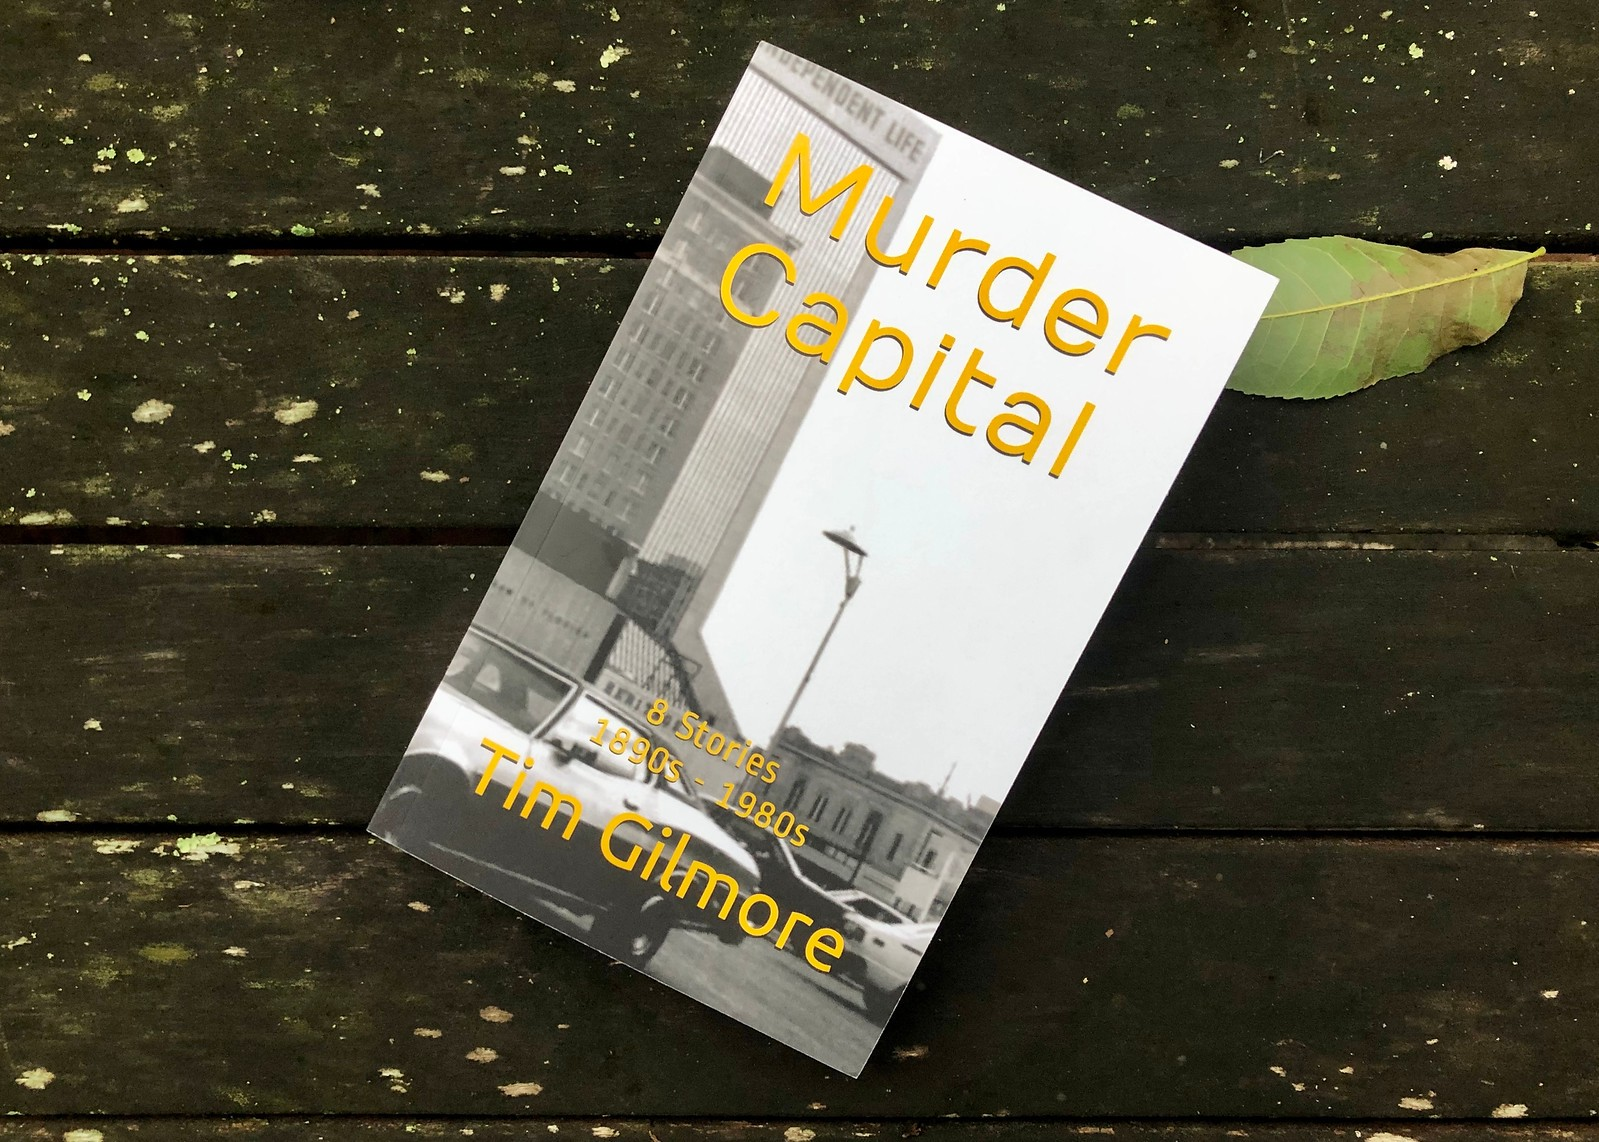 Tim Gilmore's new book chronicles FL's 'Murder Capital'